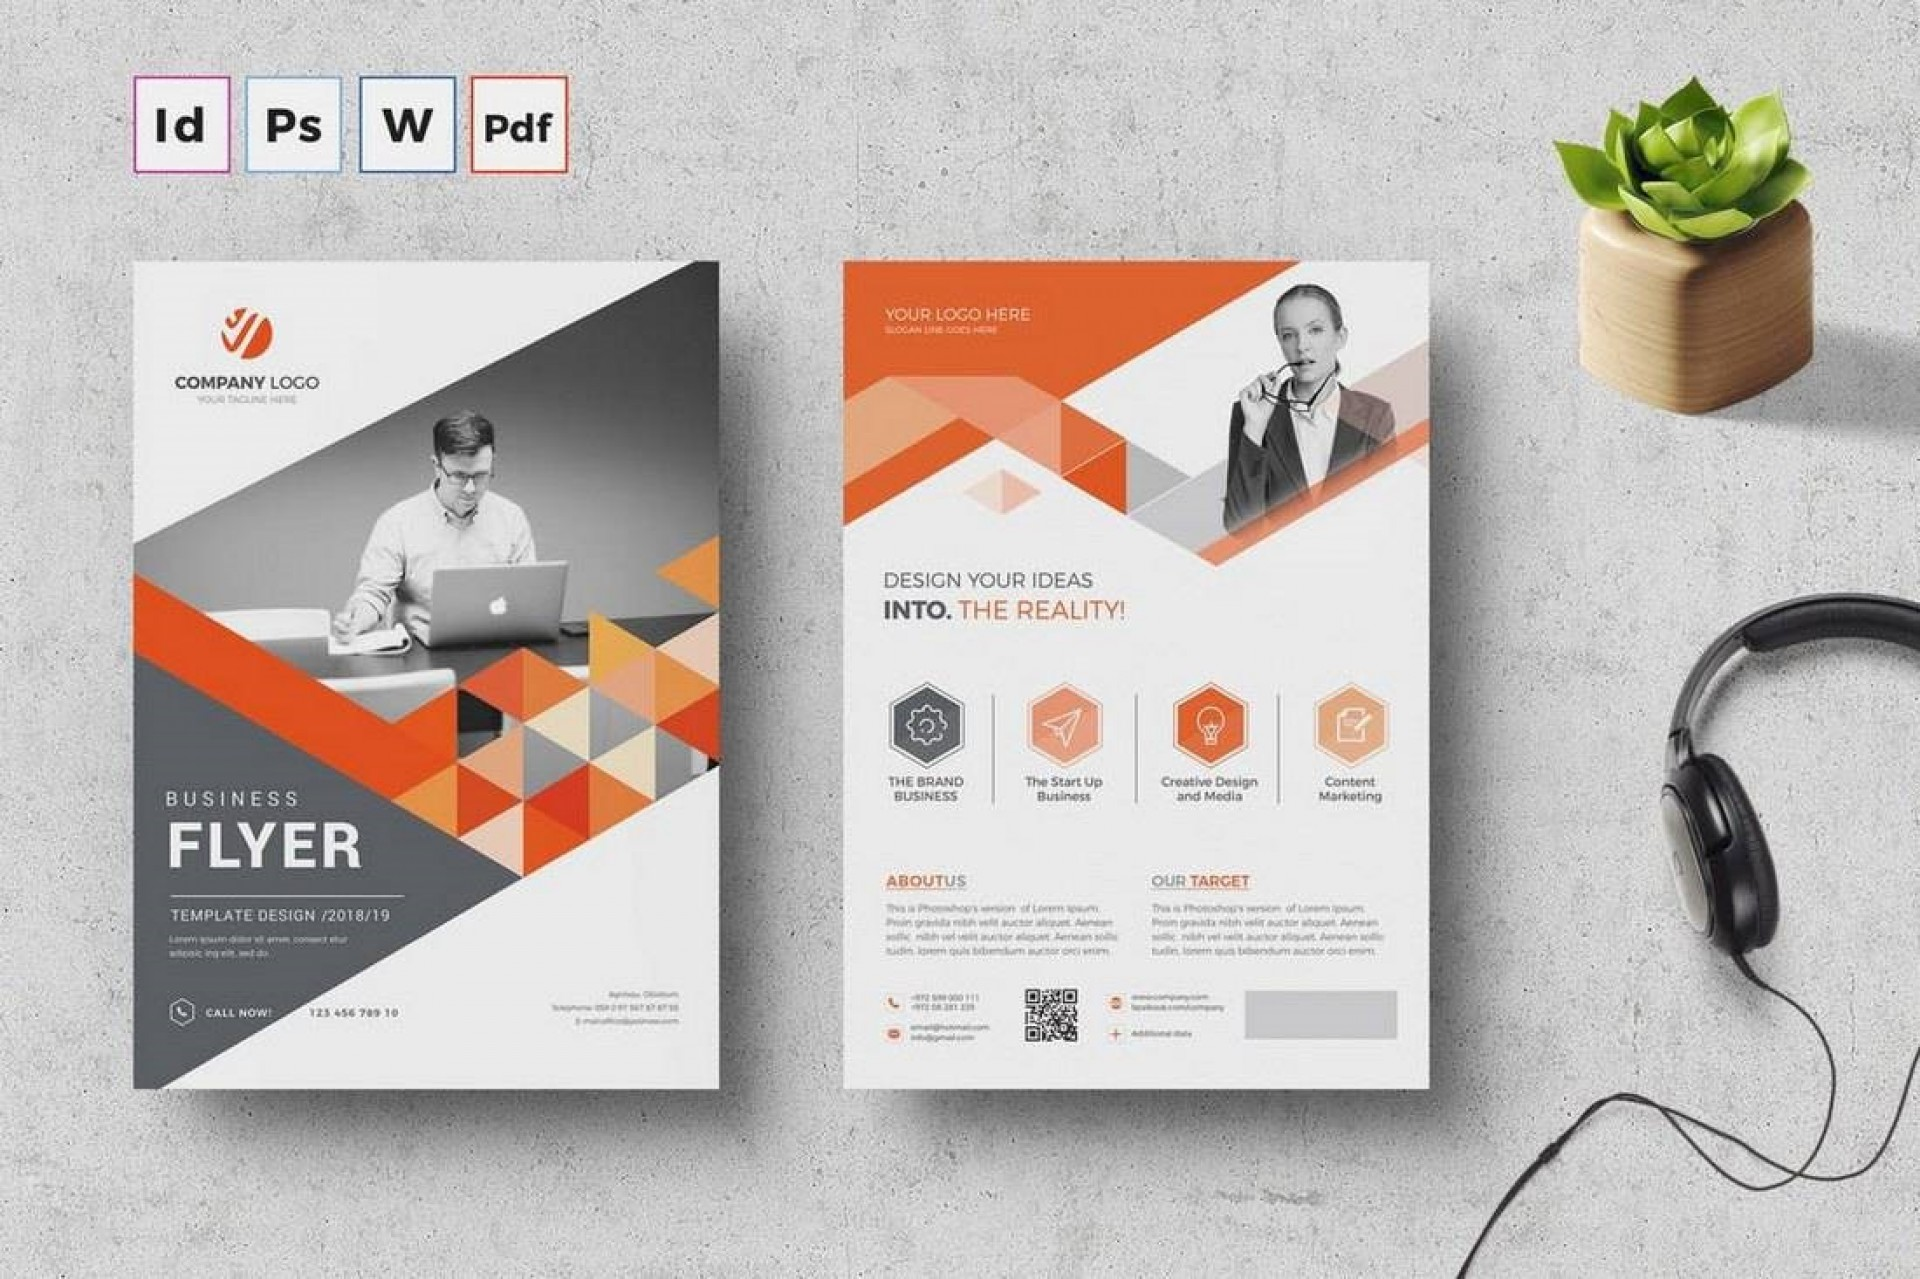 003 Staggering In Design Flyer Template Example  Indesign Free Adobe Download1920